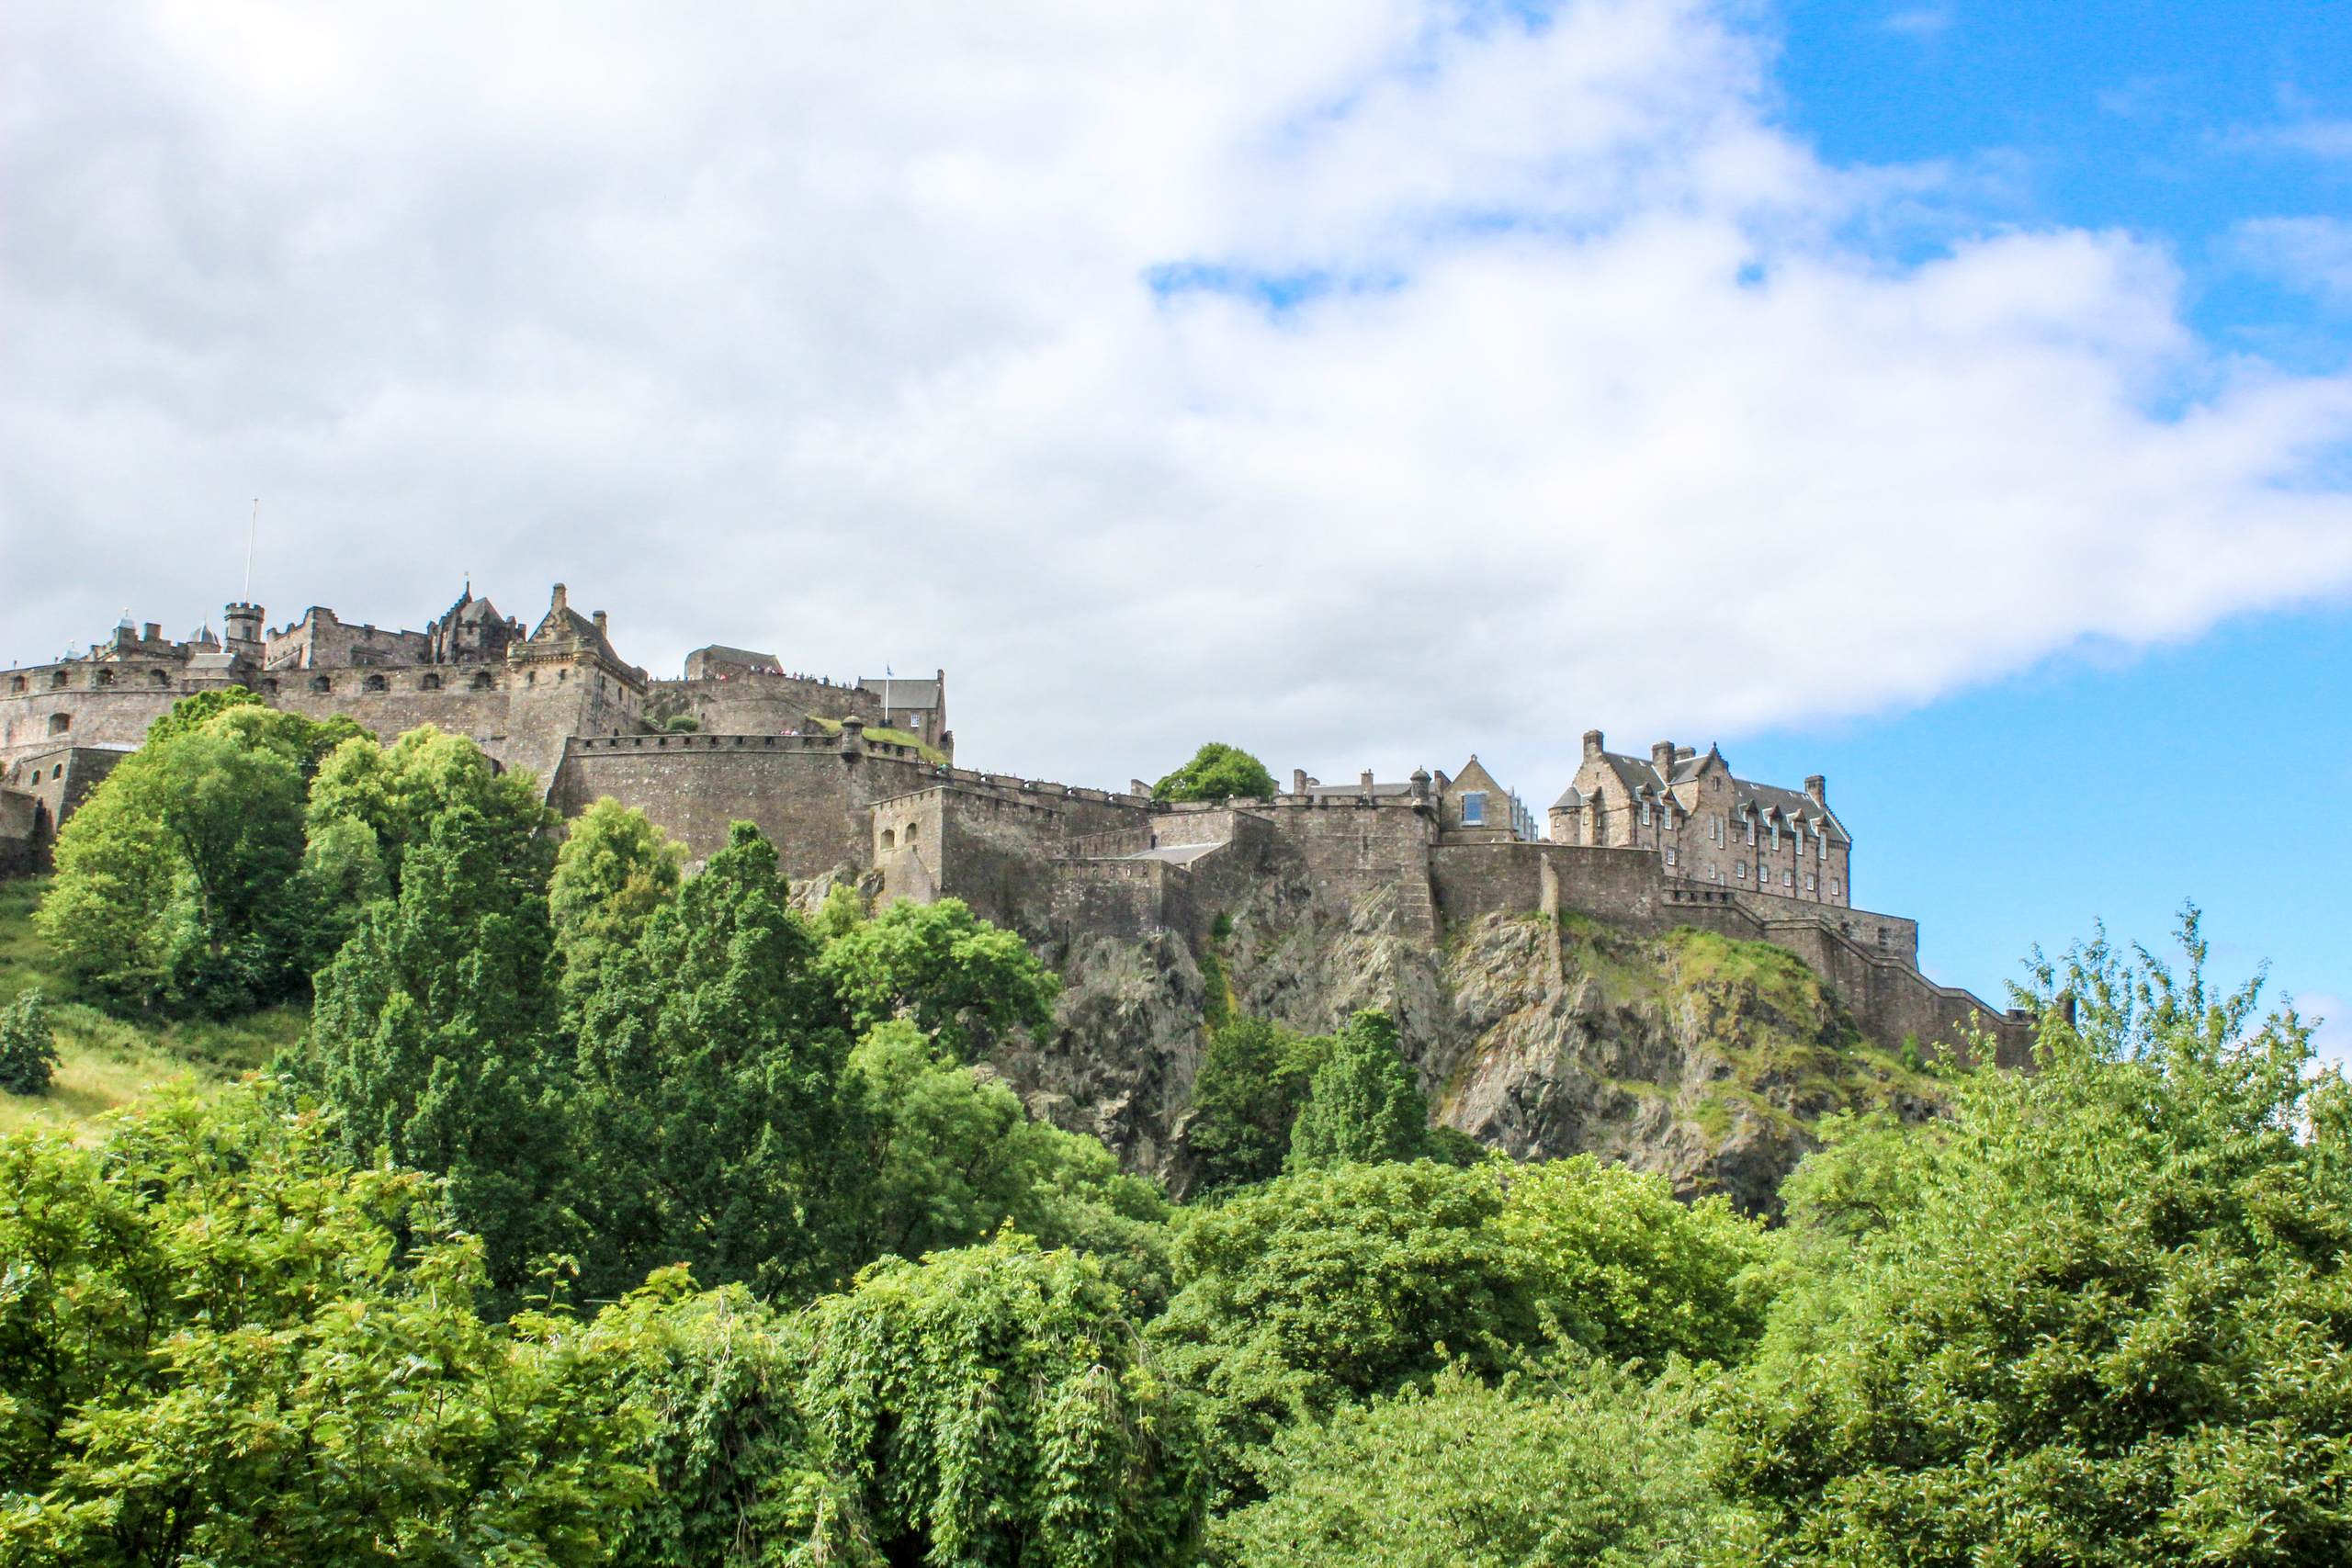 travel advice for scotland: go to the edinburgh castle early